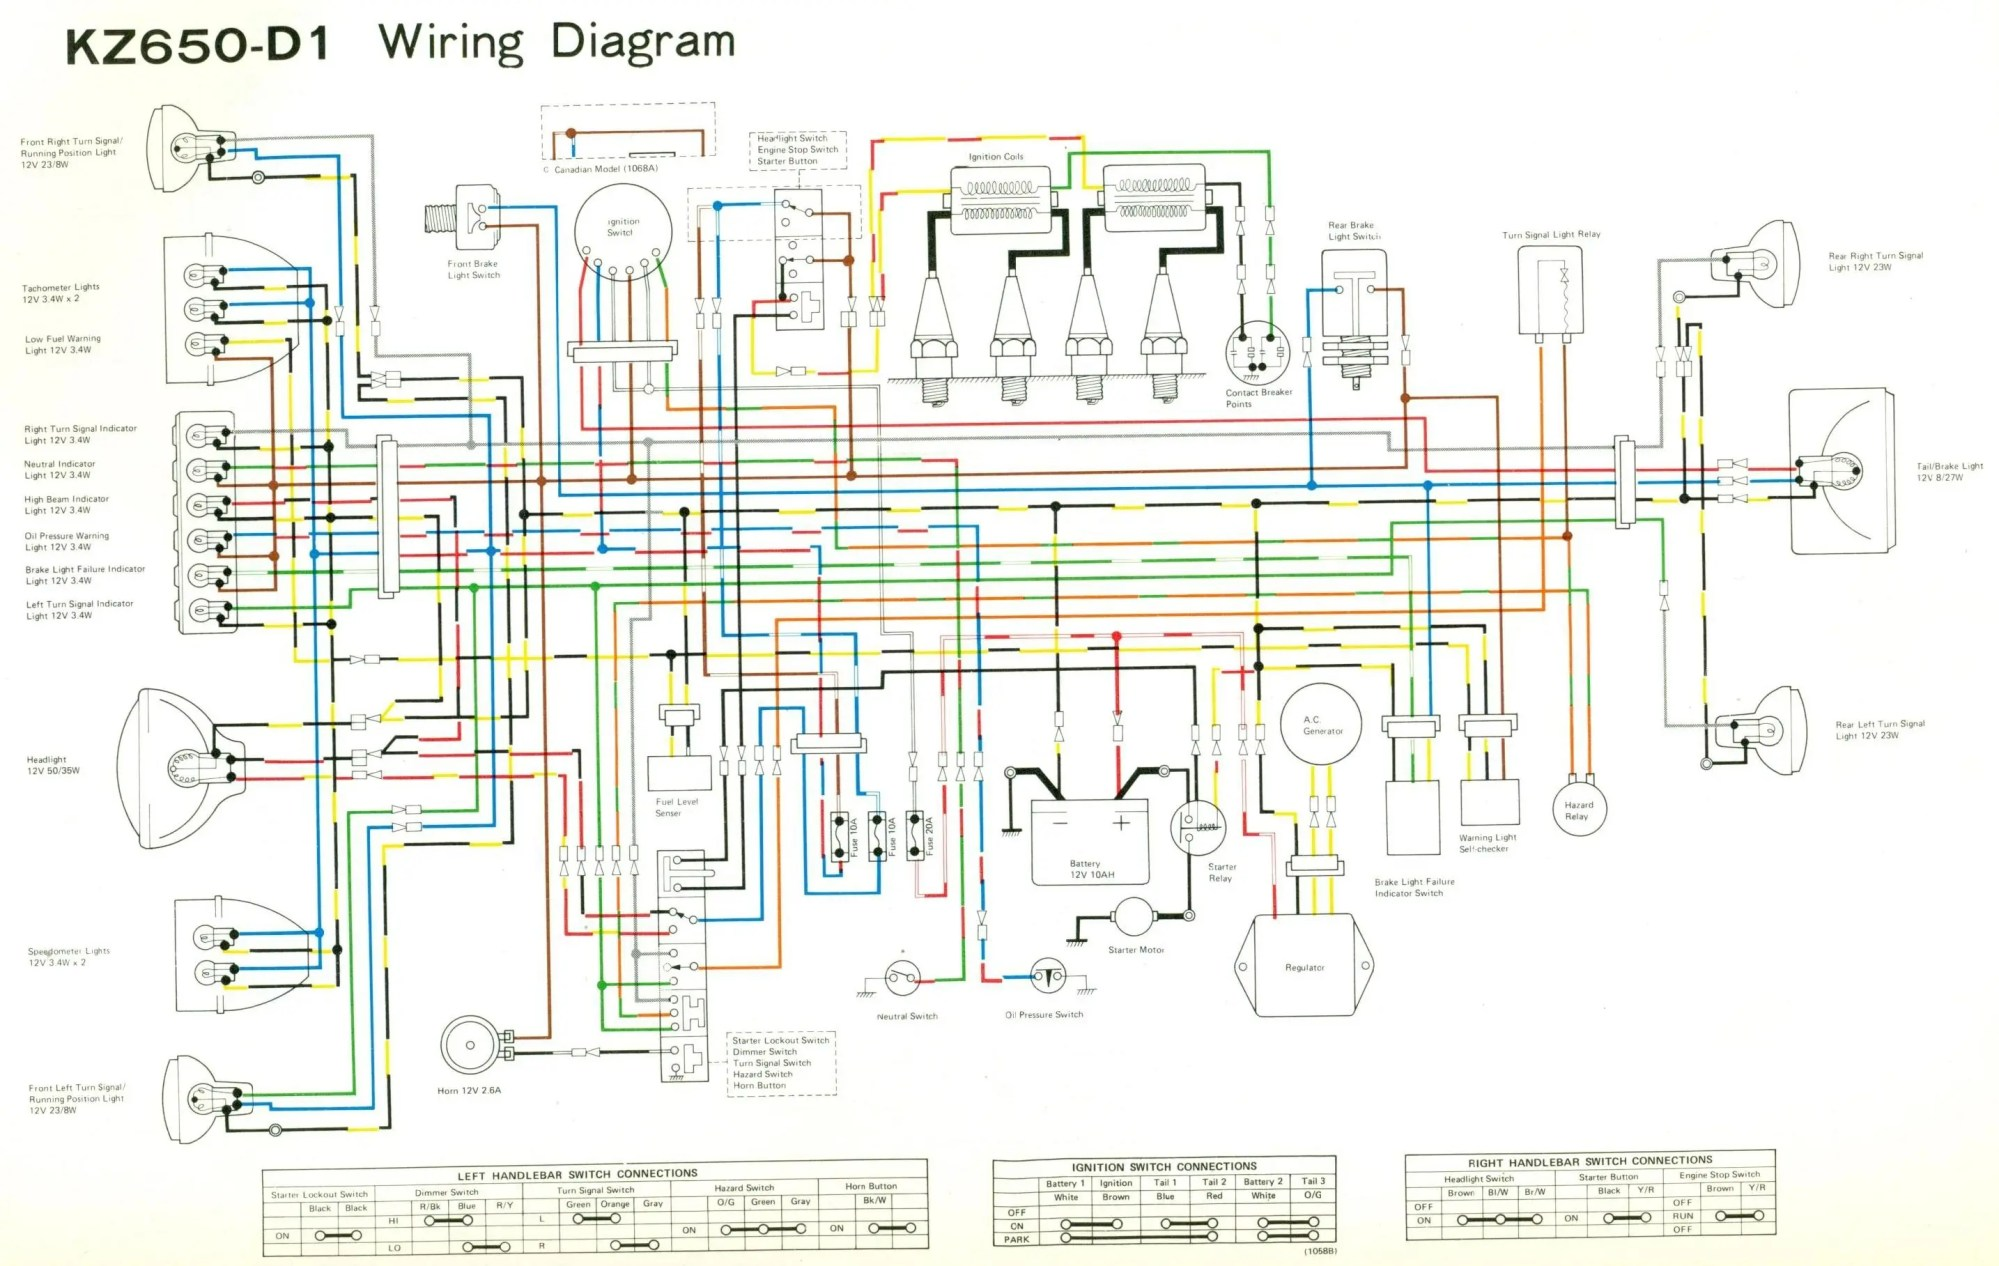 hight resolution of kawasaki g4tr wiring diagram wiring diagram fascinatingkawasaki gt550 wiring diagram wiring diagram img kawasaki g4tr wiring